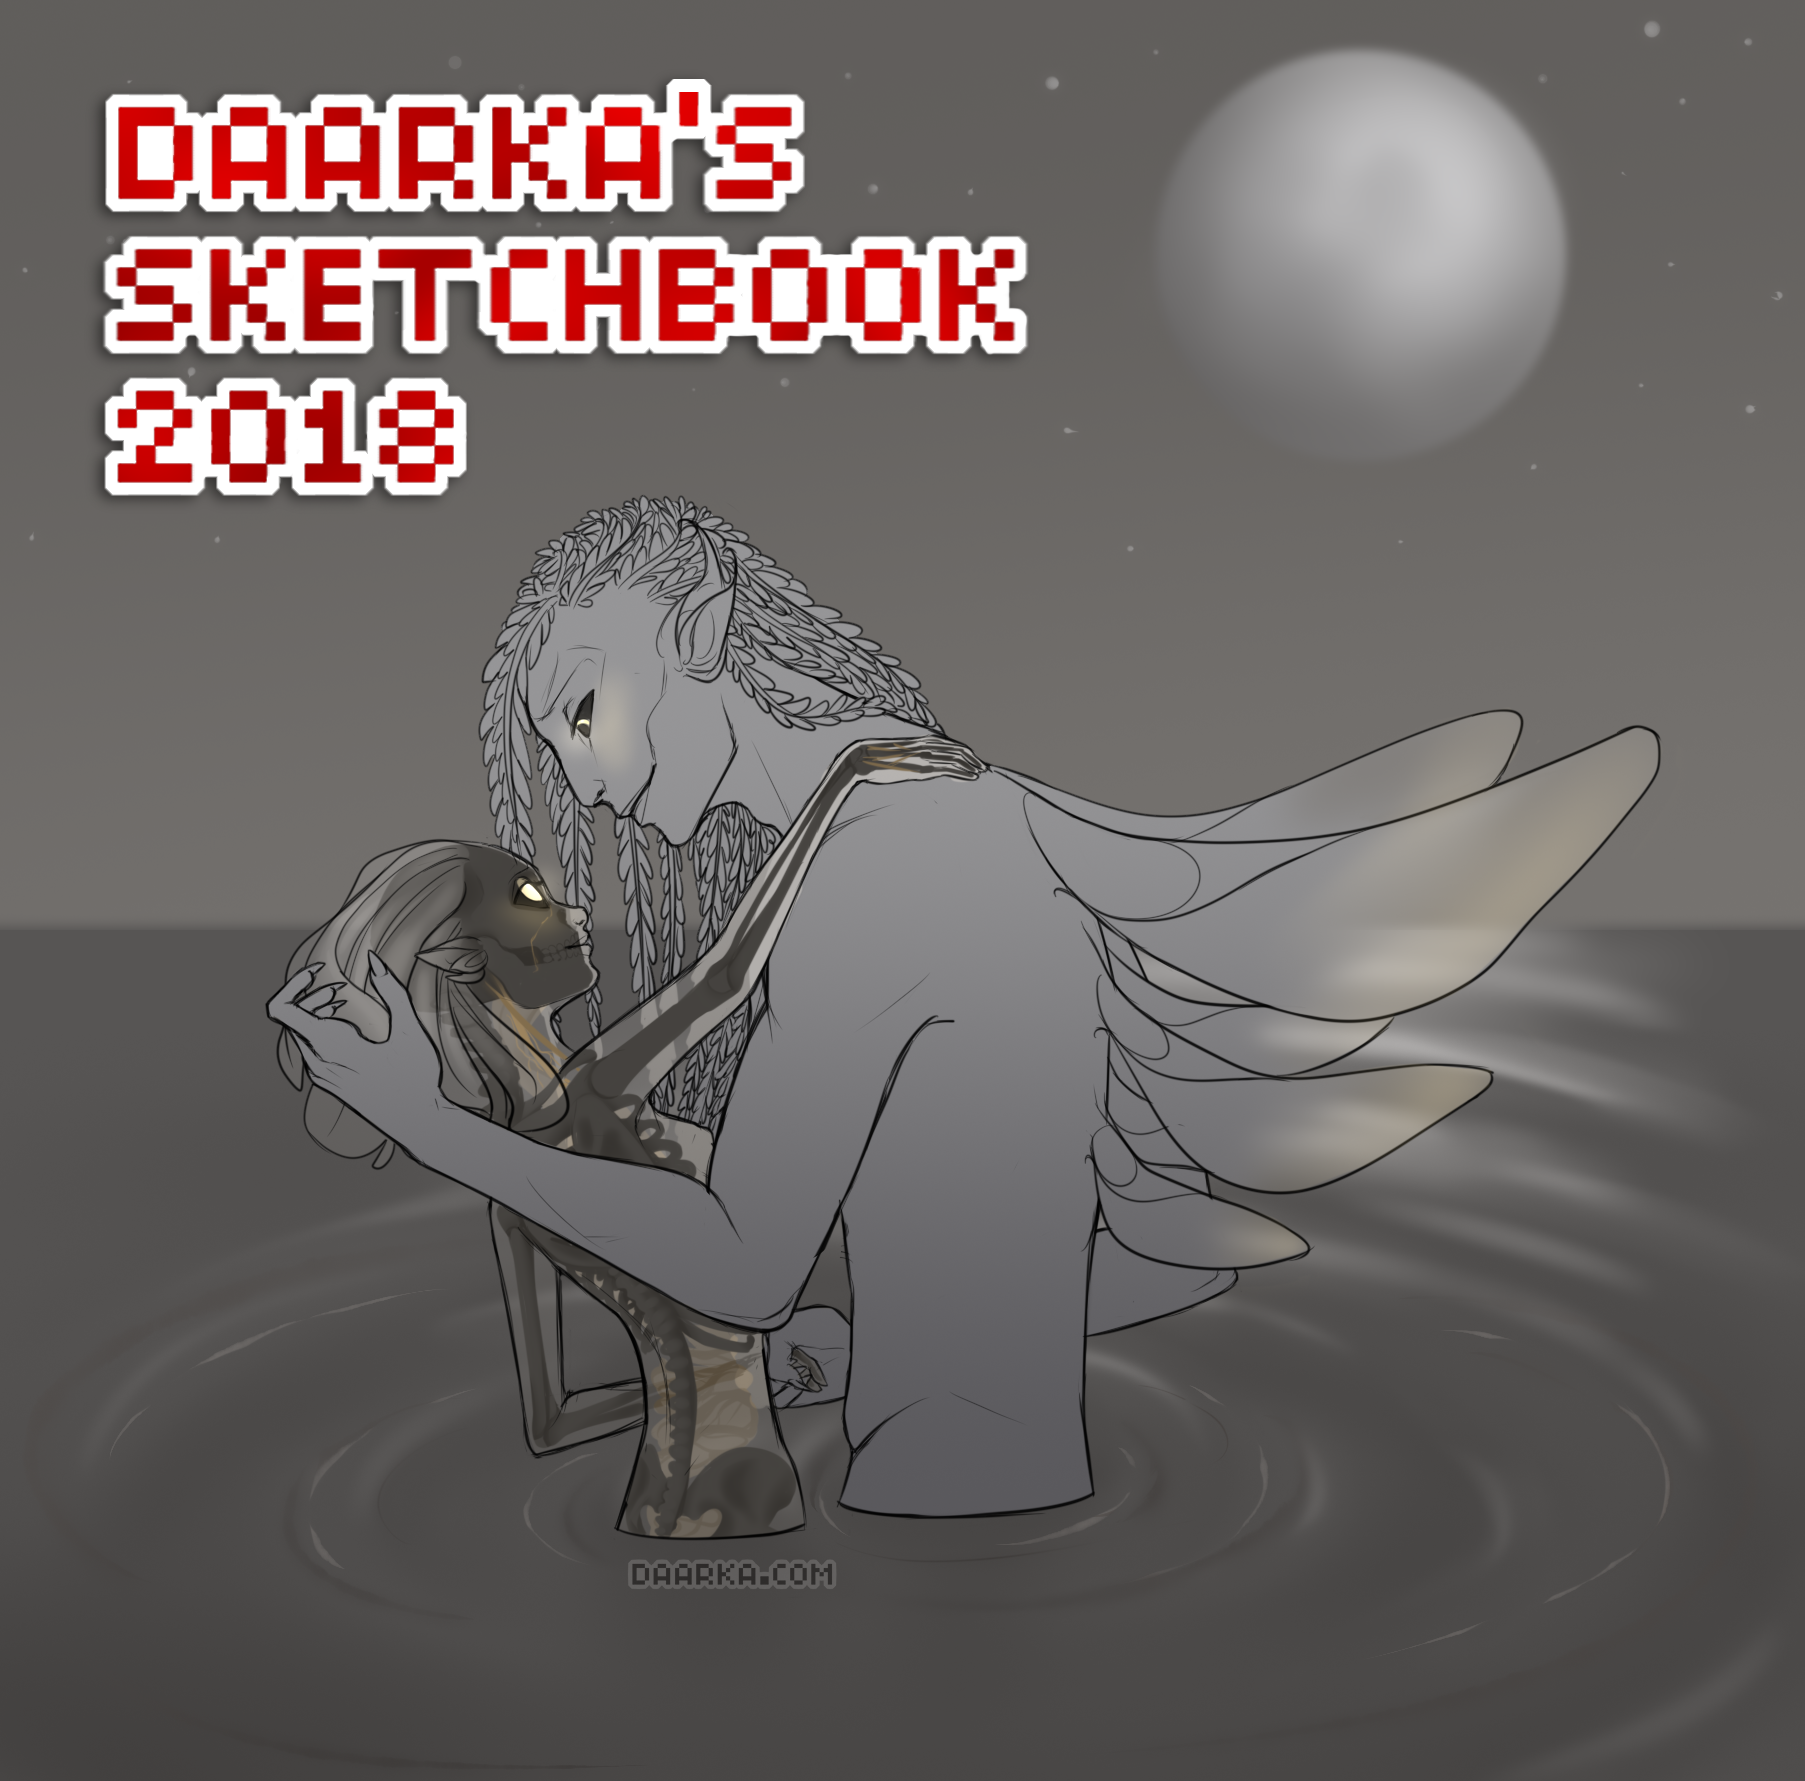 Daarka's Sketchbook 2018